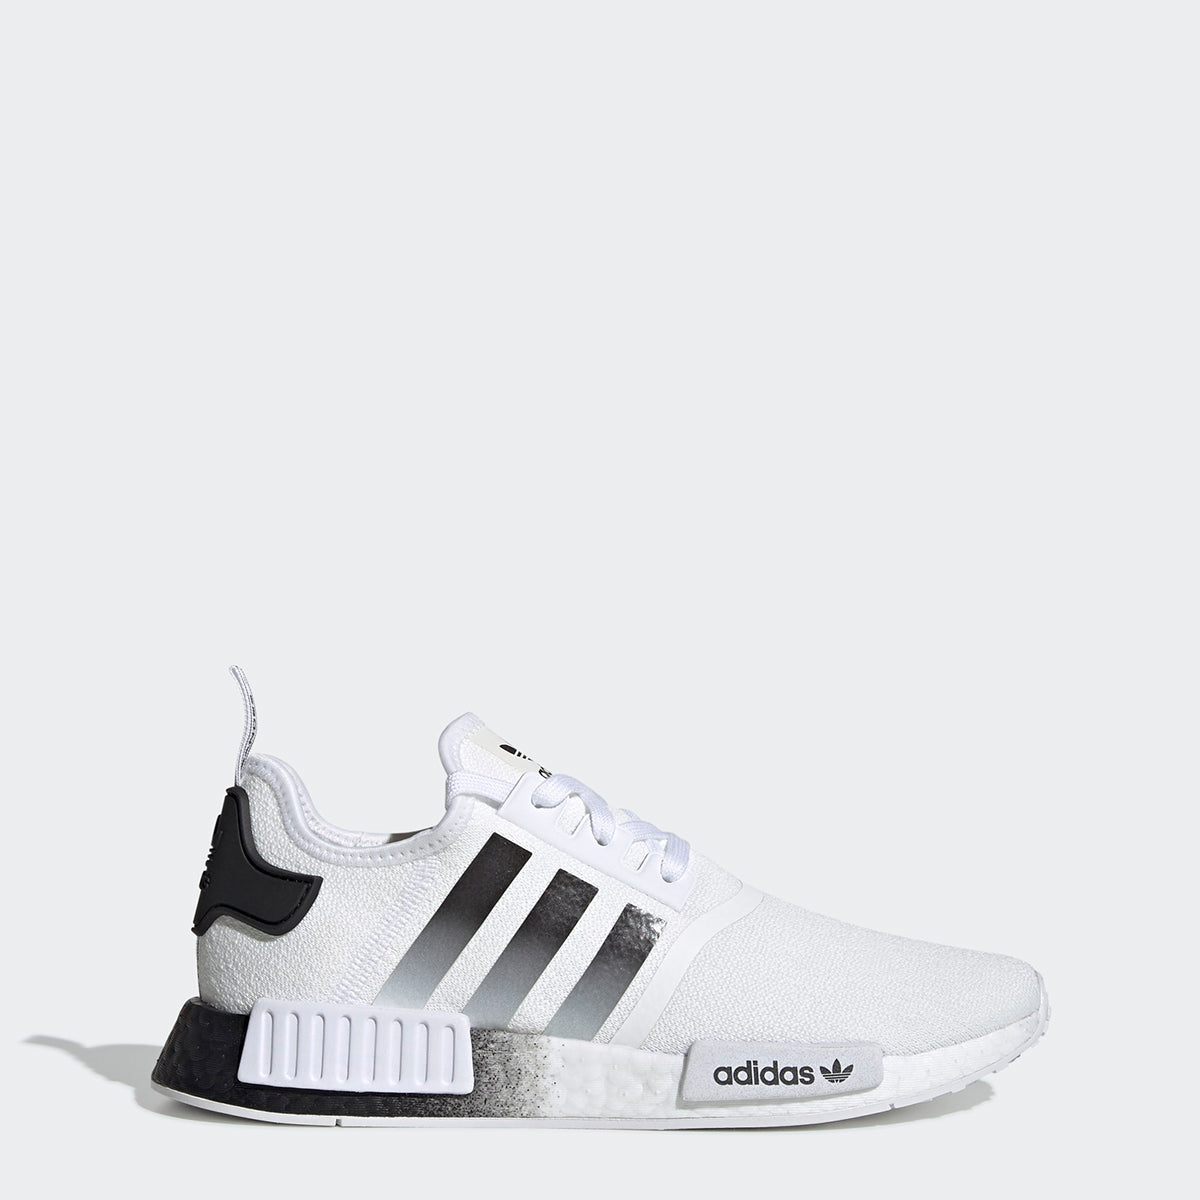 Adidas Nmd R1 Shoes White Ombre Eg7410 Chicago City Sports